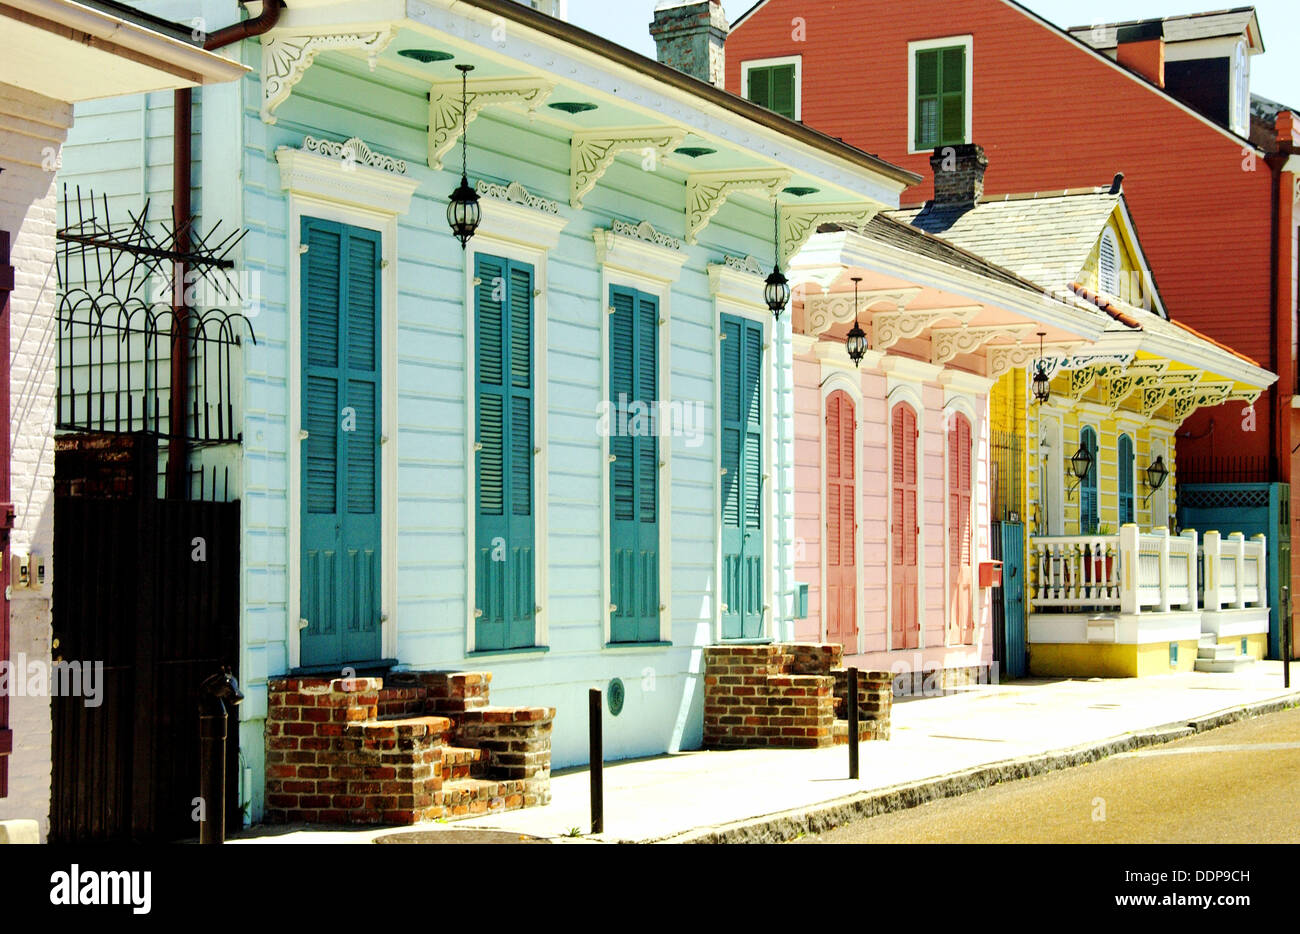 creole cottages on st anne street in the french quarter of new rh alamy com audubon cottages in new orleans rental cottages in new orleans